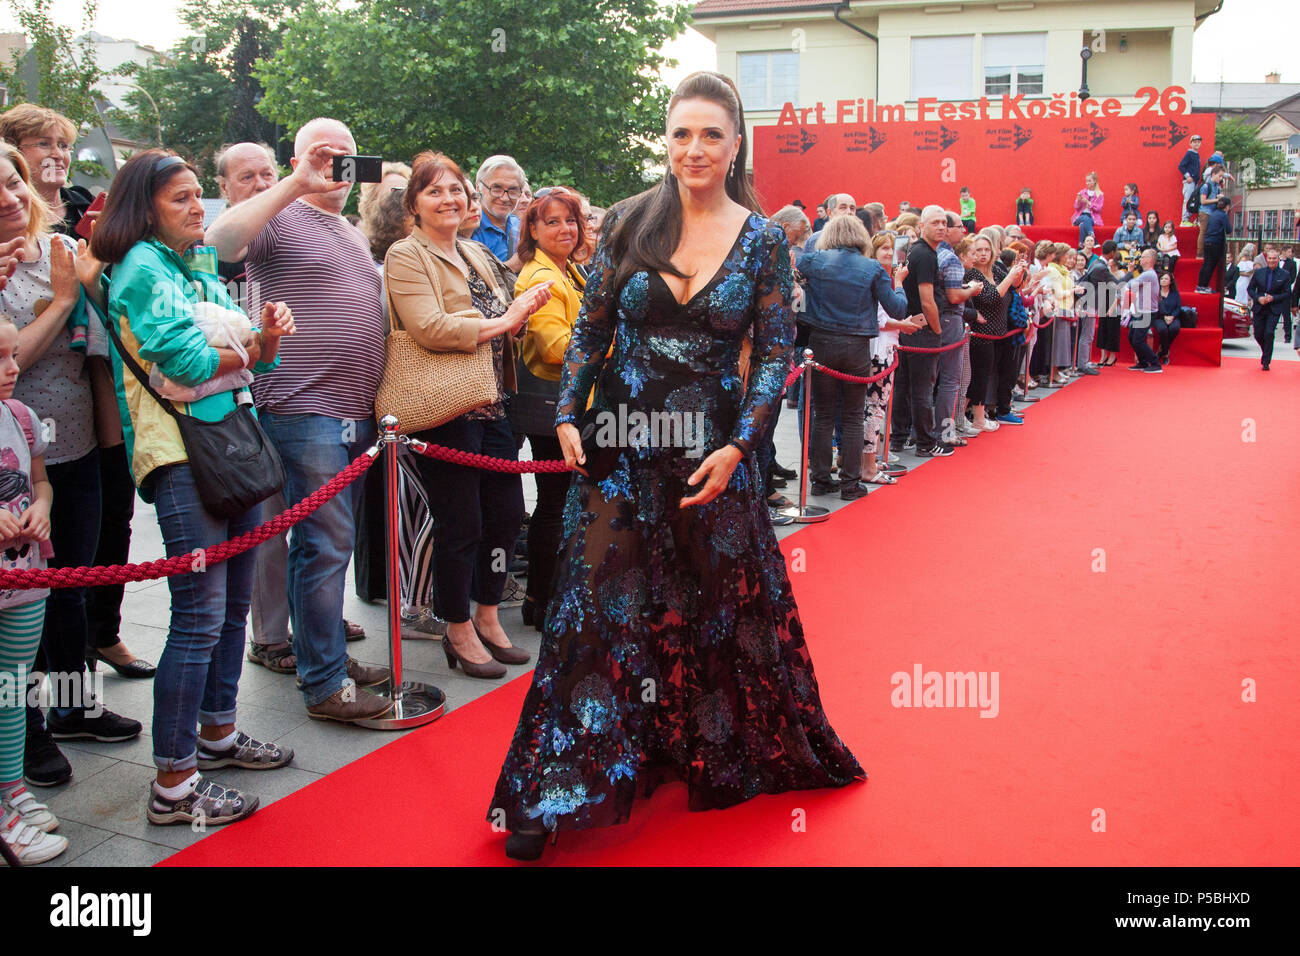 Slovak actress Zuzana Maurery at the opening ceremony of Art Film Fest film festival in Kosice, Slovakia - Stock Image